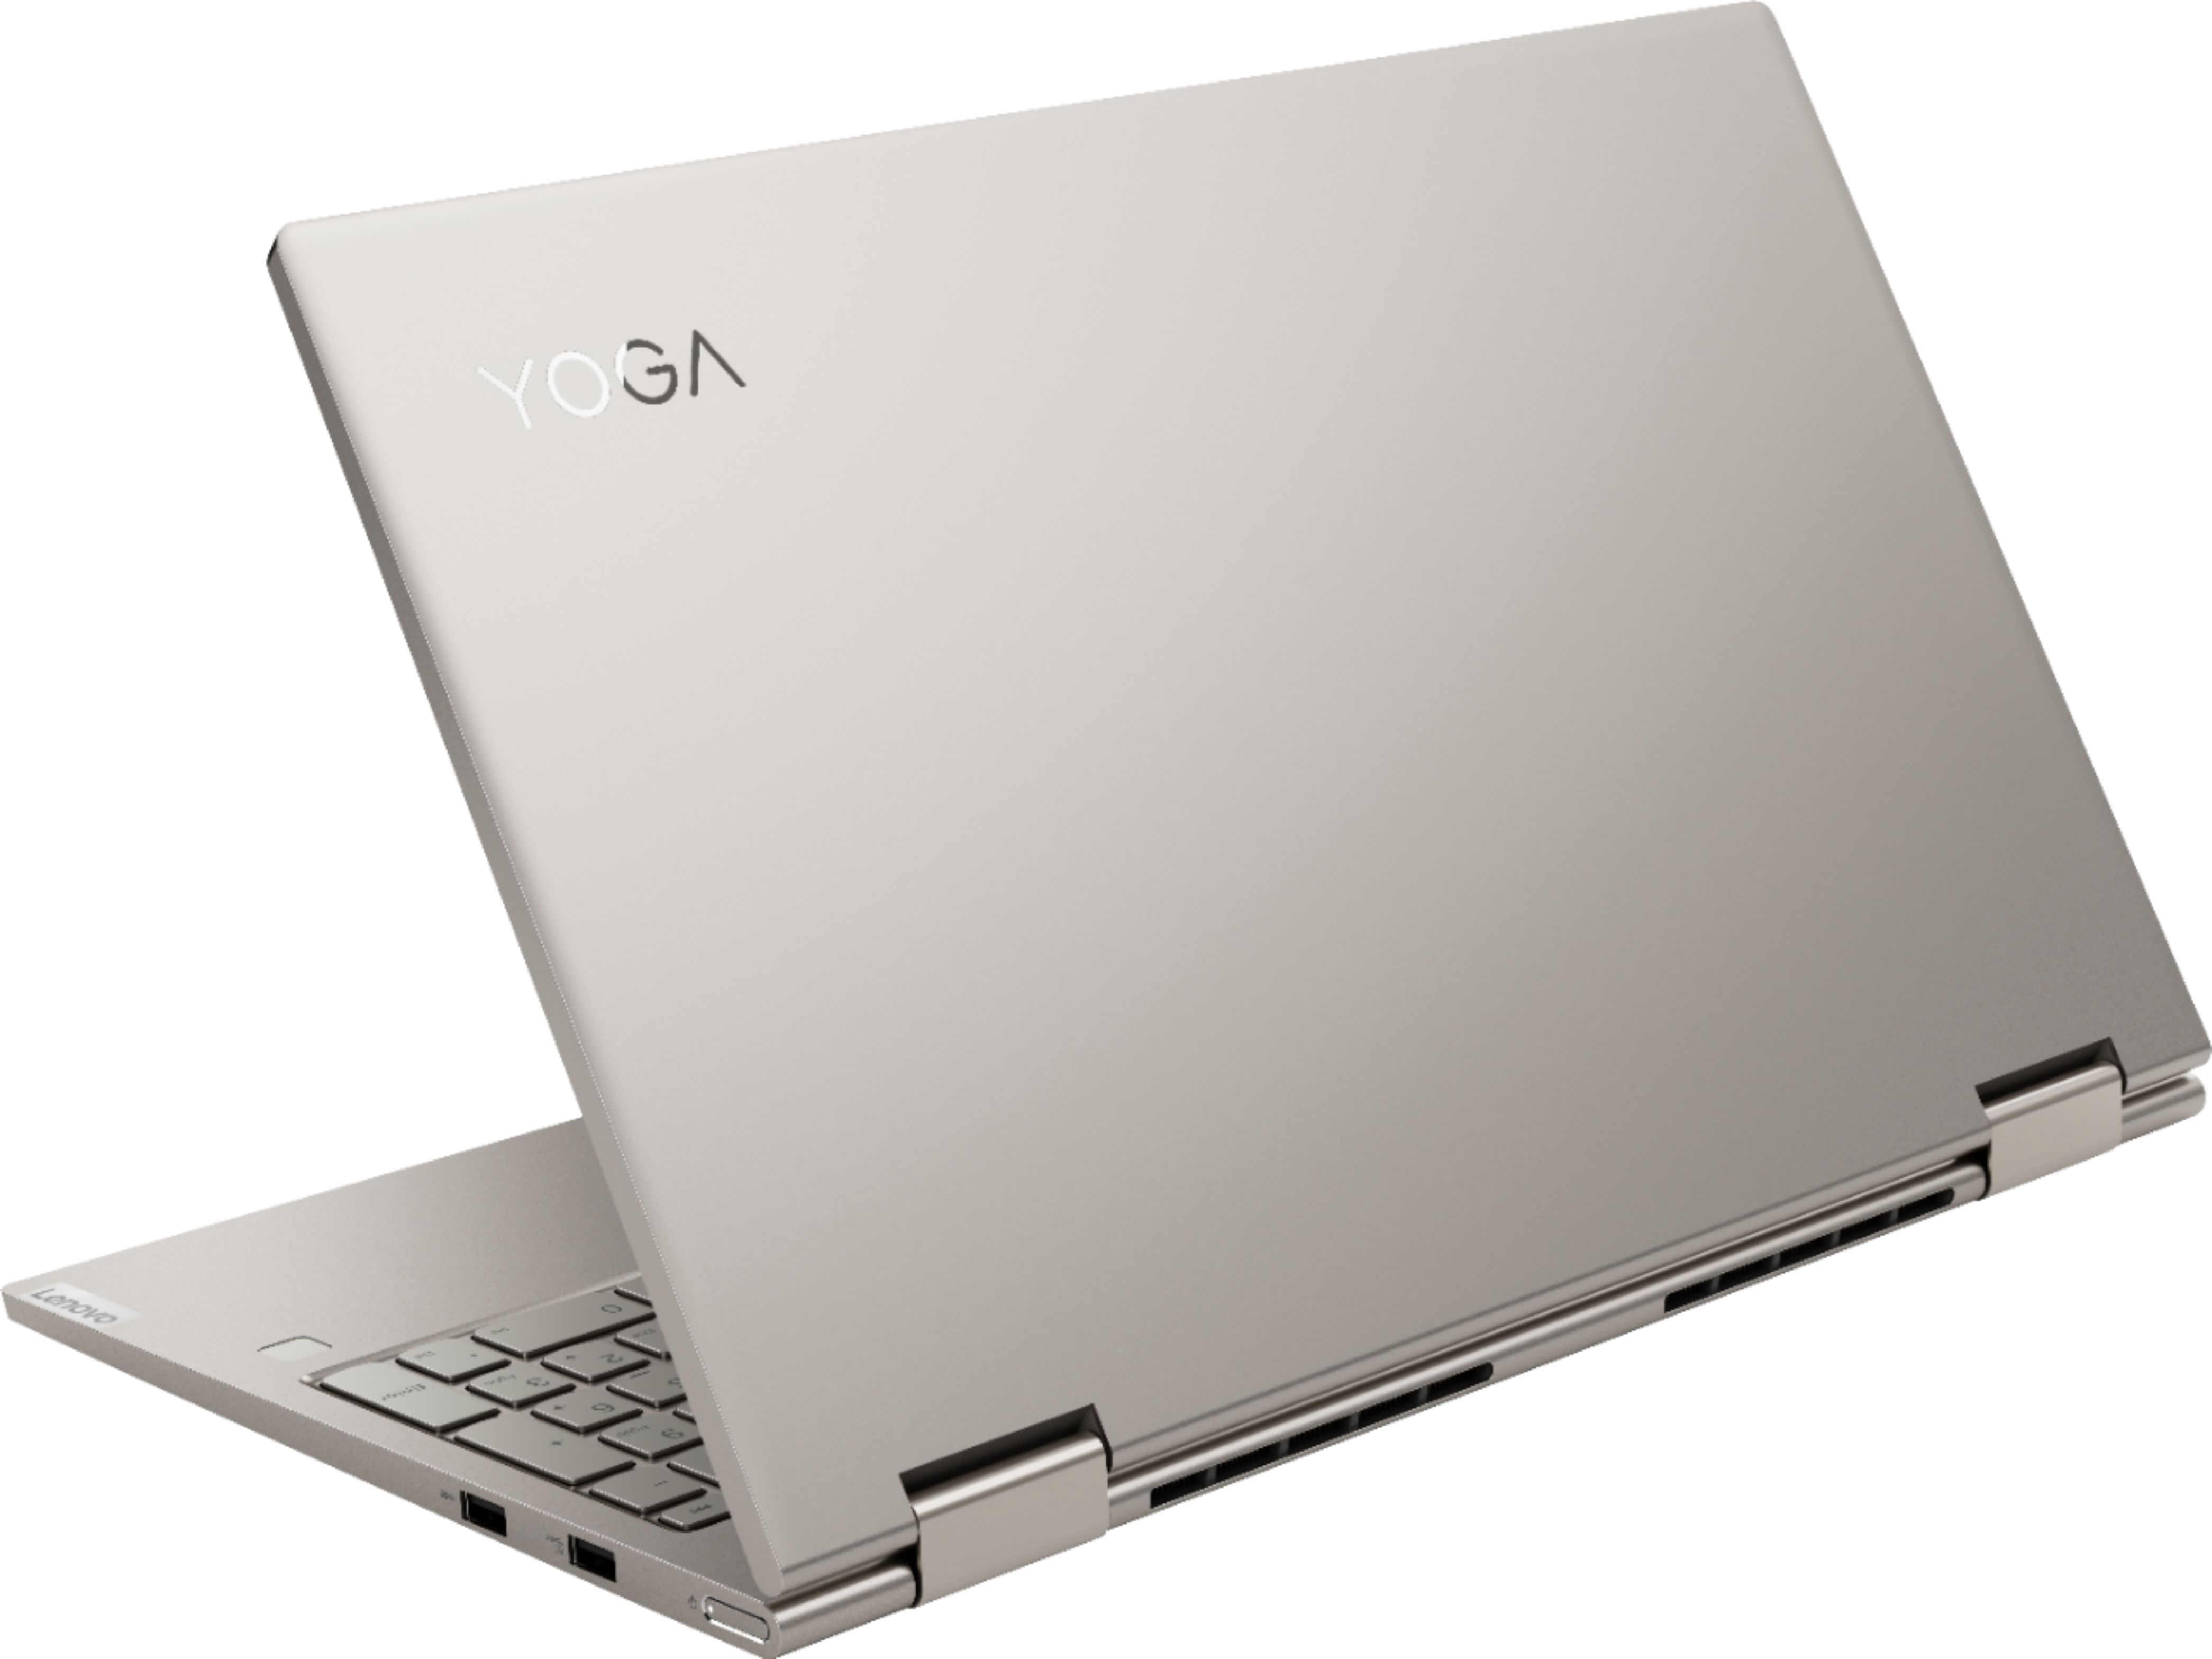 "Alt View Zoom 1. Lenovo - Yoga C740 2-in-1 15.6"" Touch-Screen Laptop - Intel Core i7 - 12GB Memory - 512GB Solid State Drive - Mica."